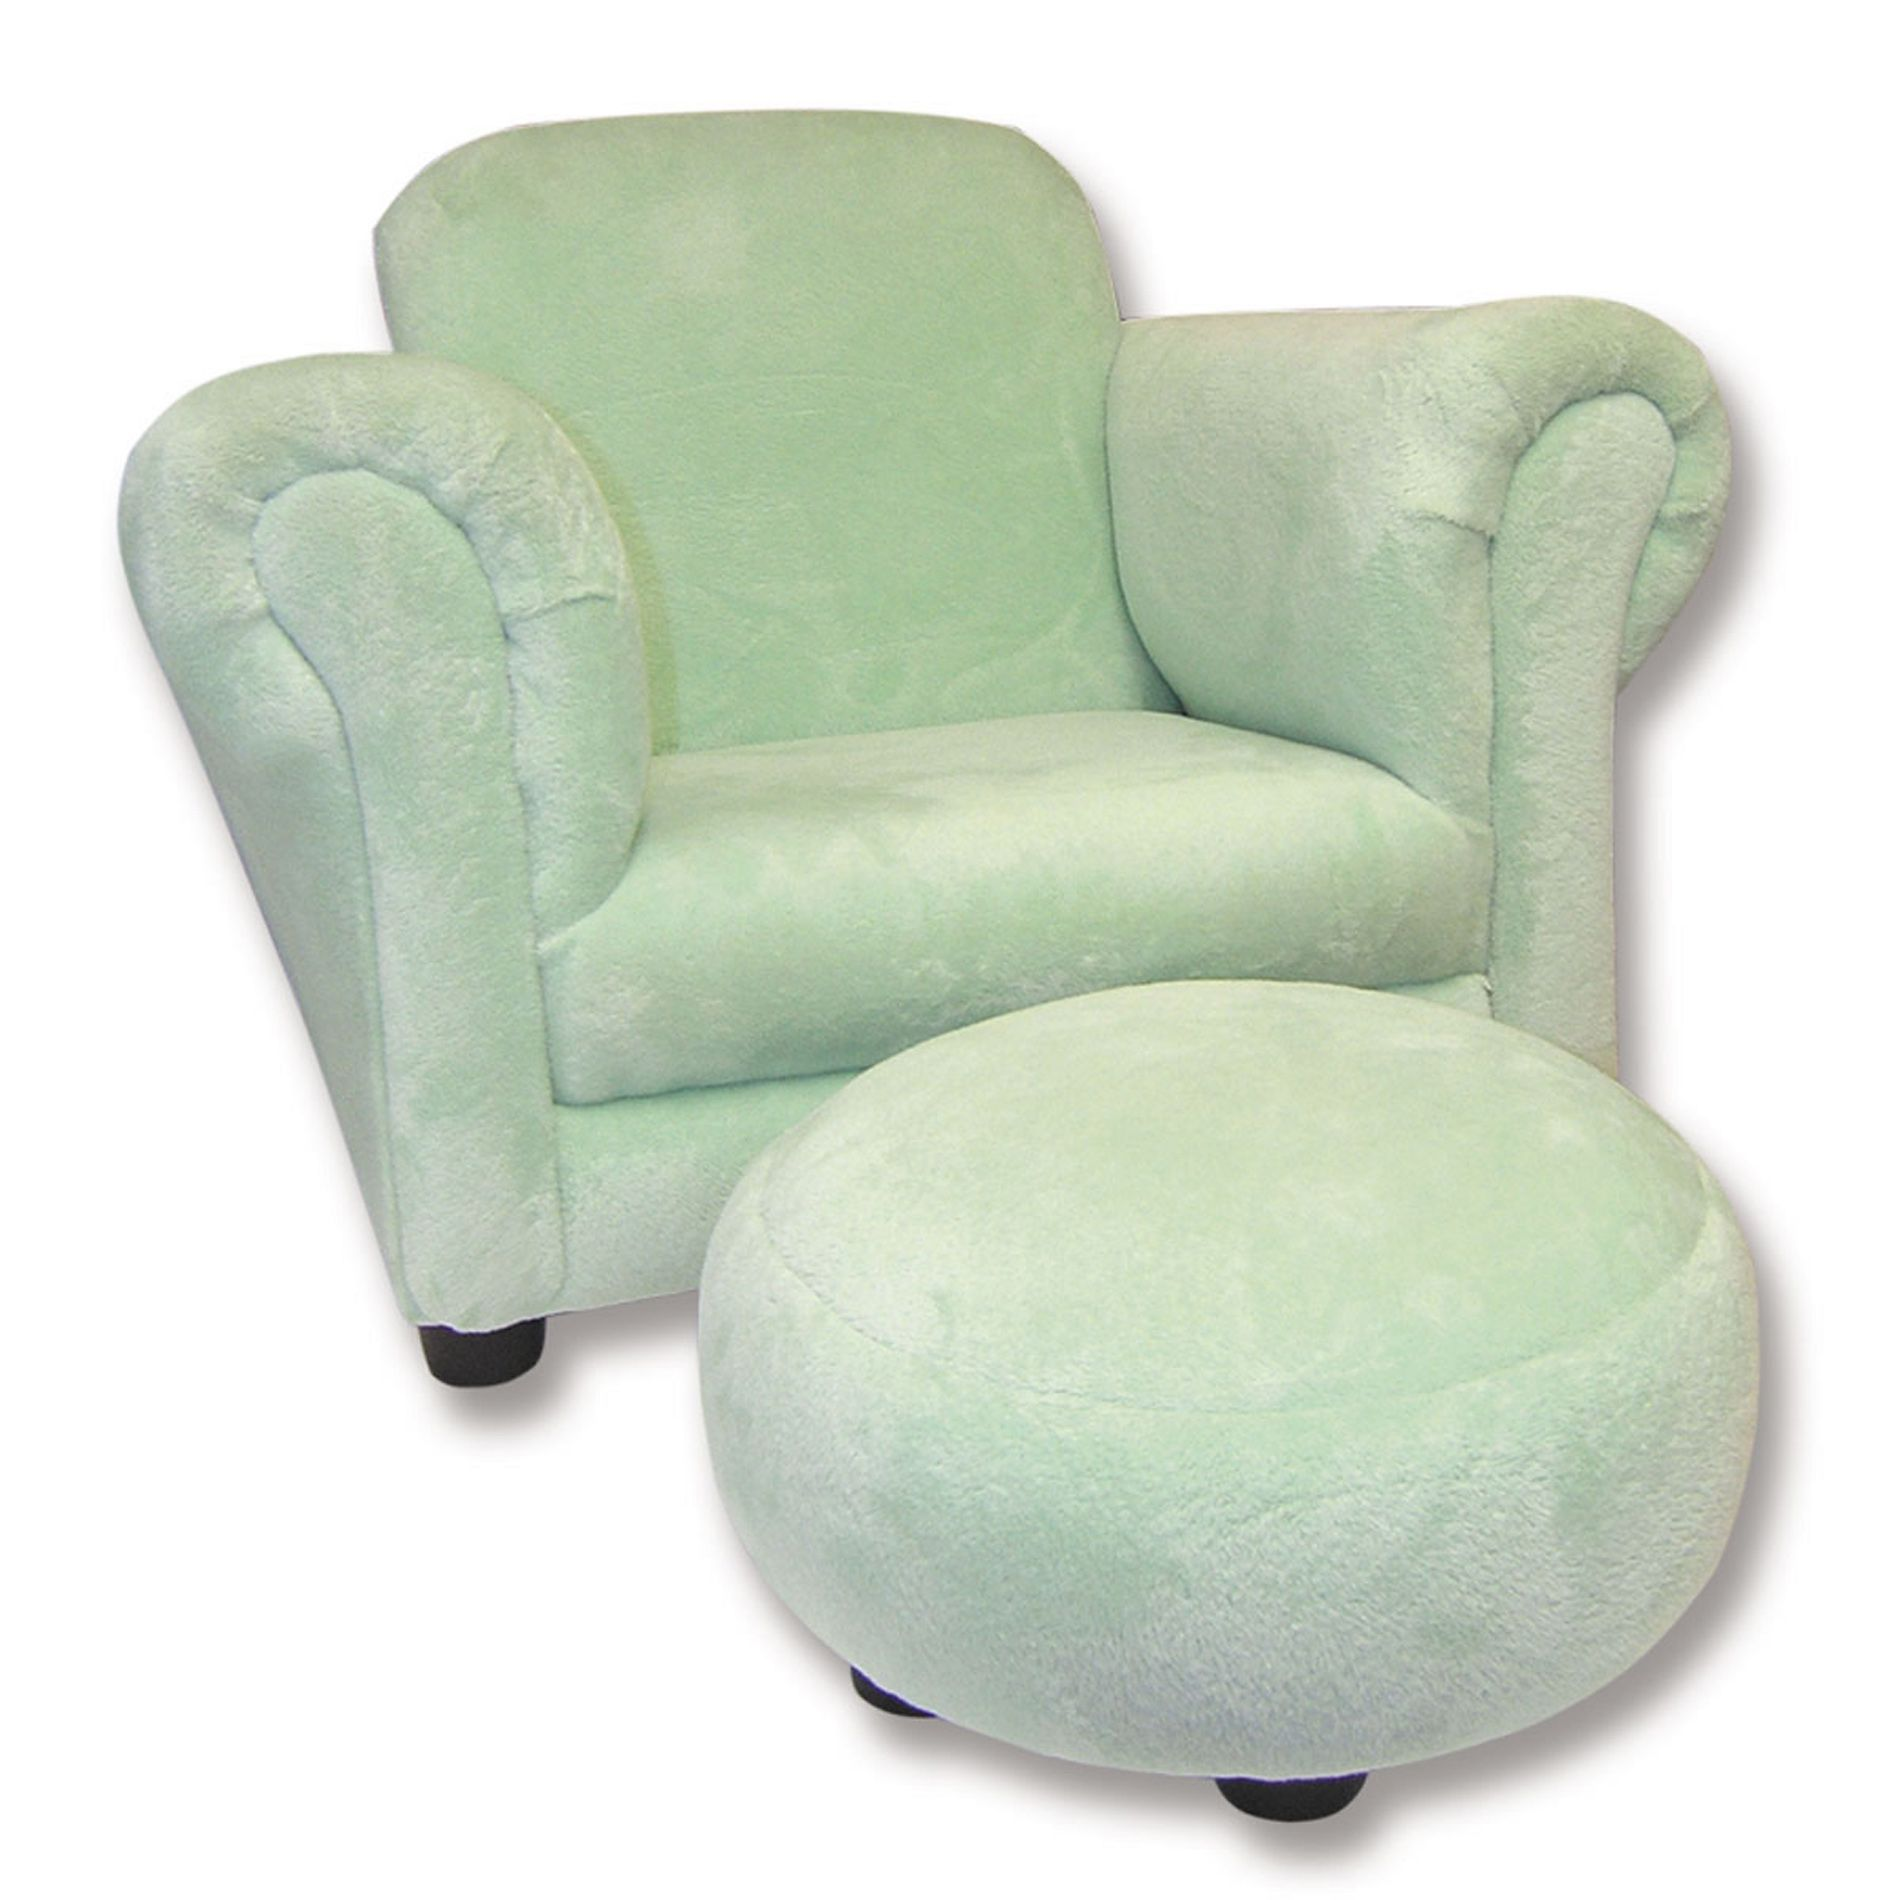 baby furniture chair small folding chairs stools wavery by trend lab sage velour with ottoman